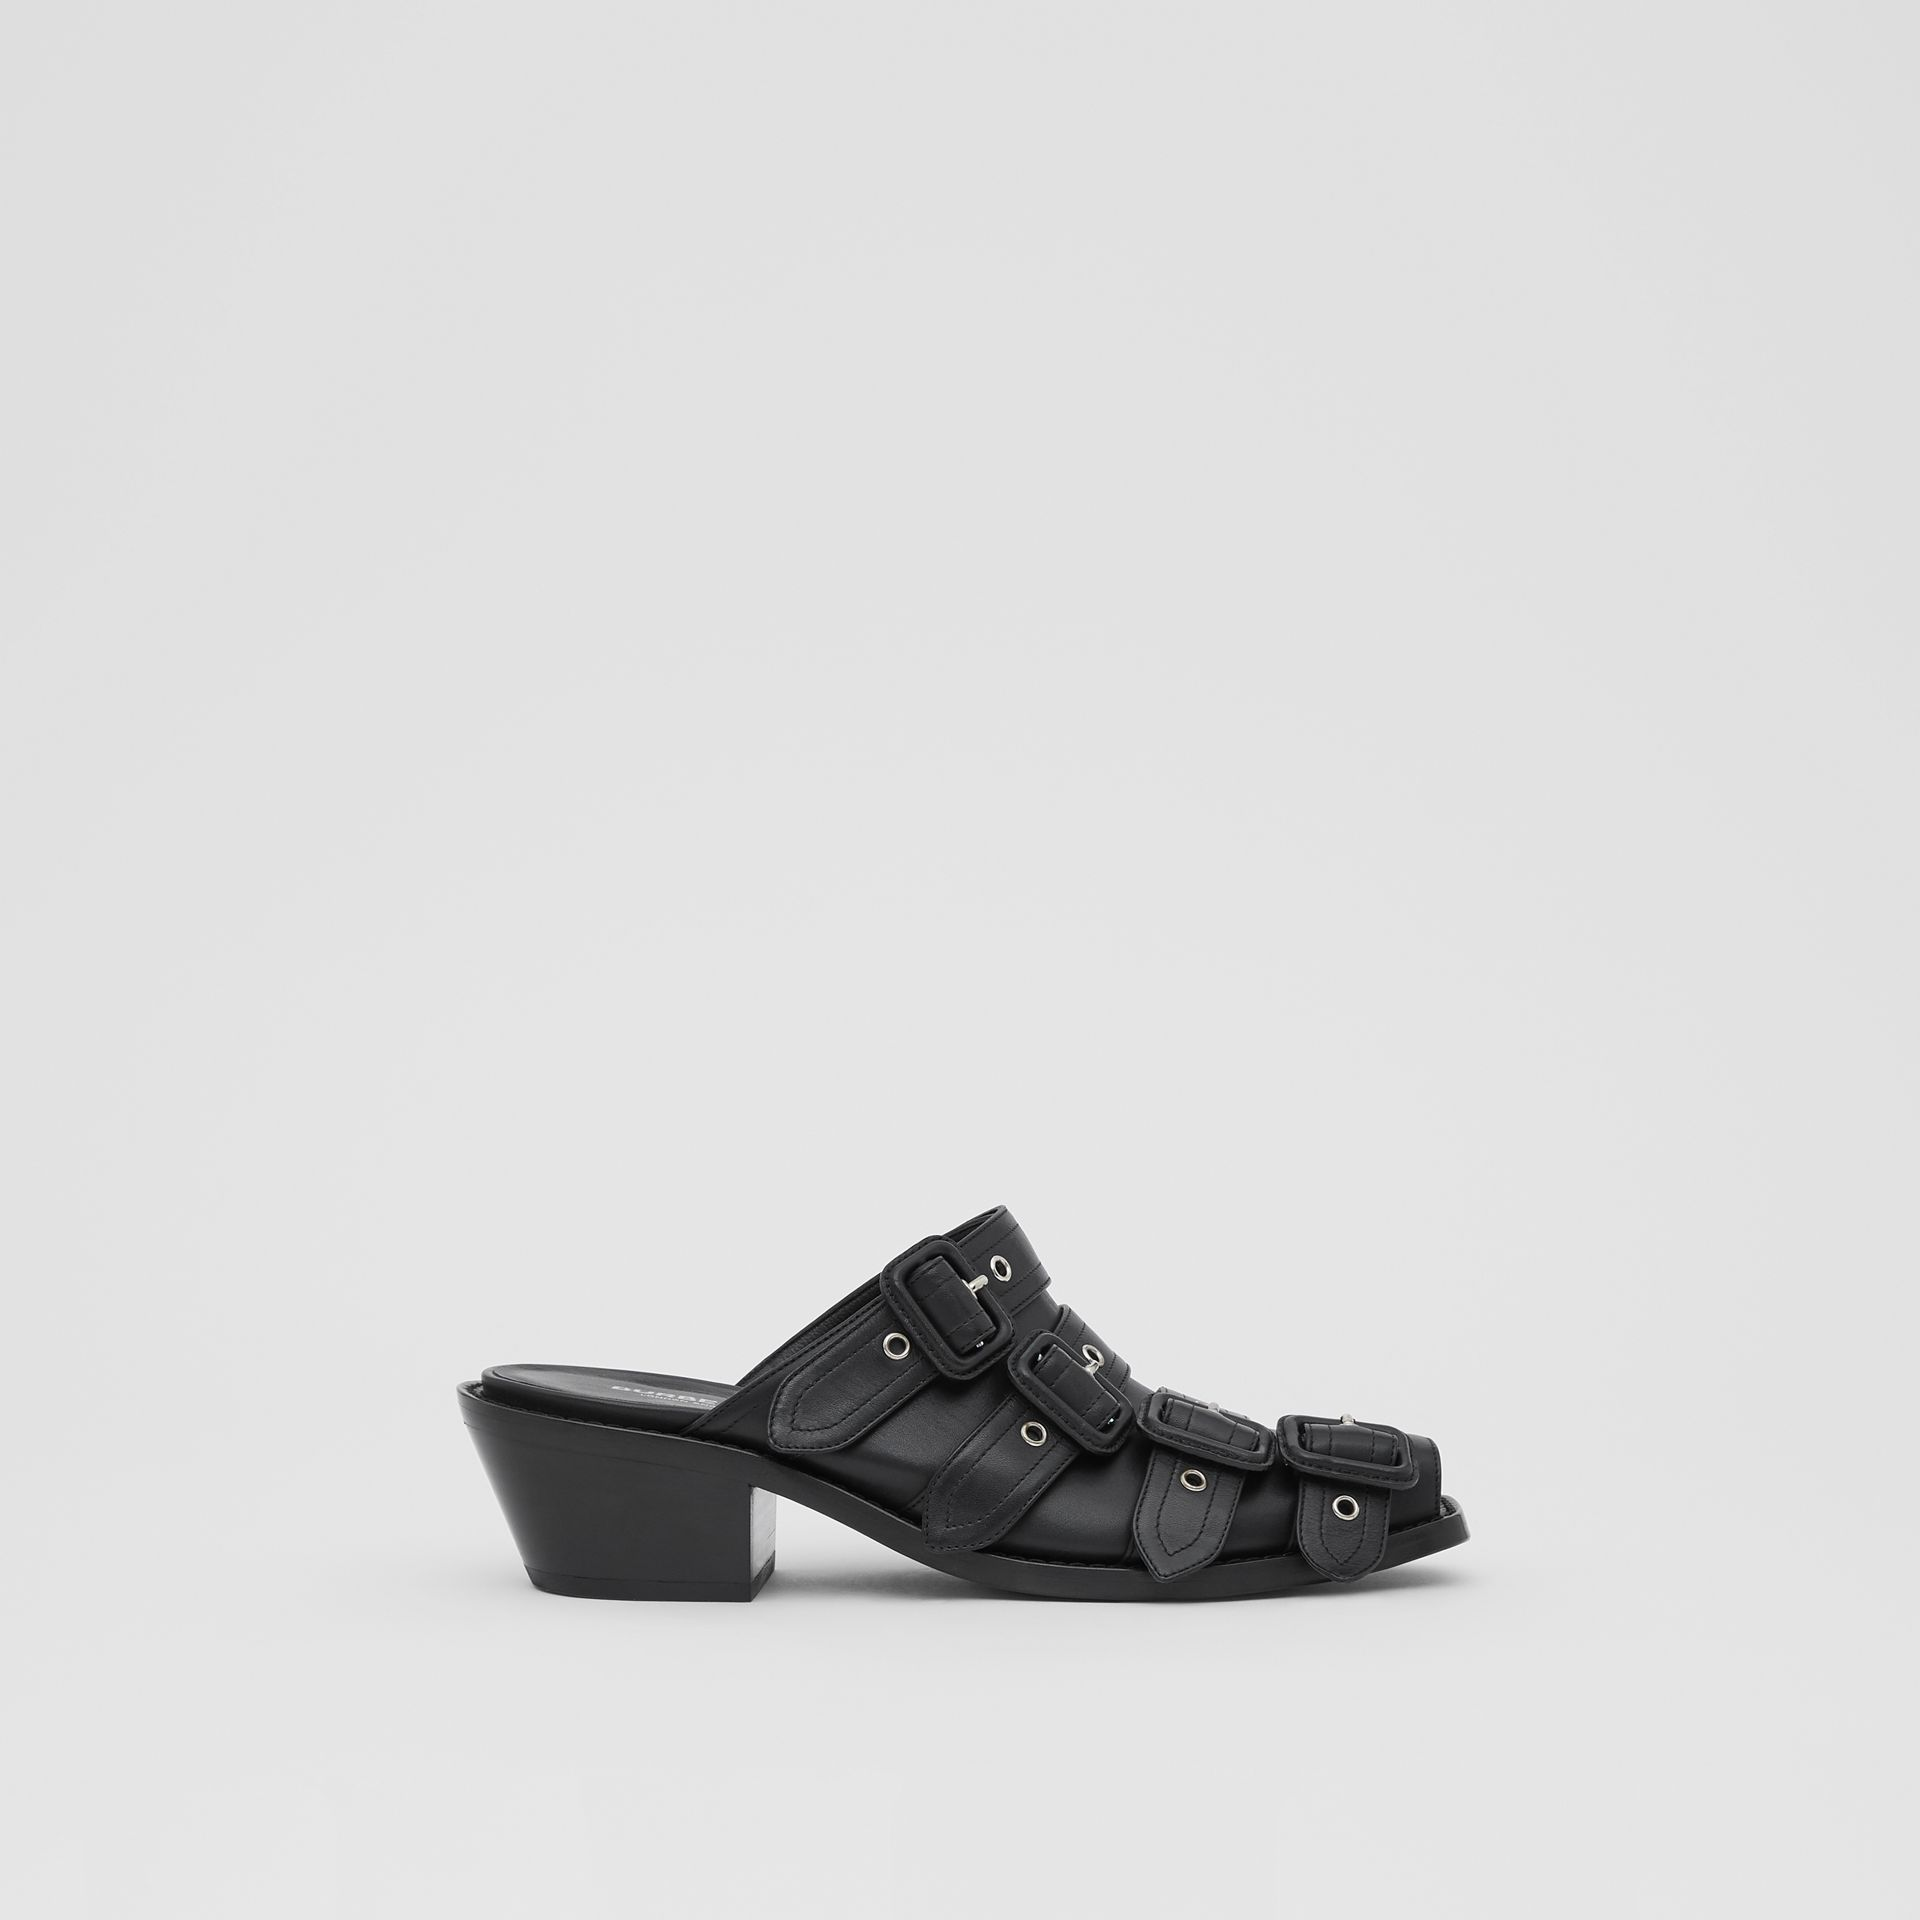 Buckled Leather Peep-toe Mules in Black - Women | Burberry - gallery image 5